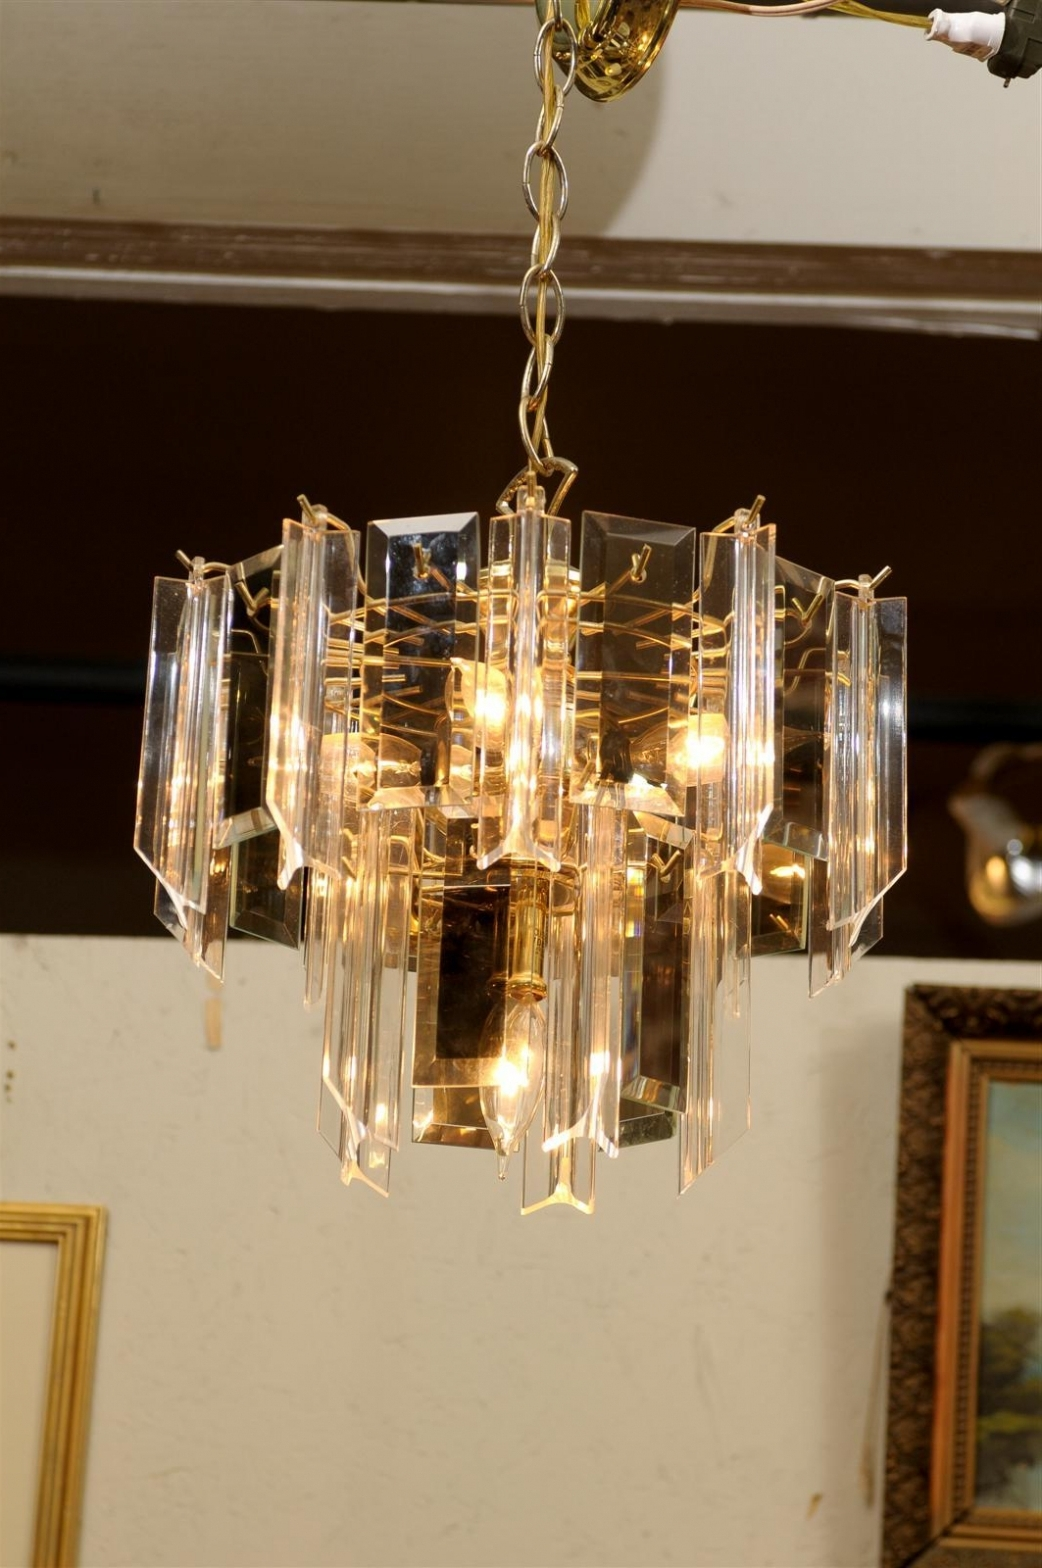 Brass Beveled Glass Chandelier – Chandelier Designs Intended For 2019 Smoked Glass Chandelier (View 4 of 20)